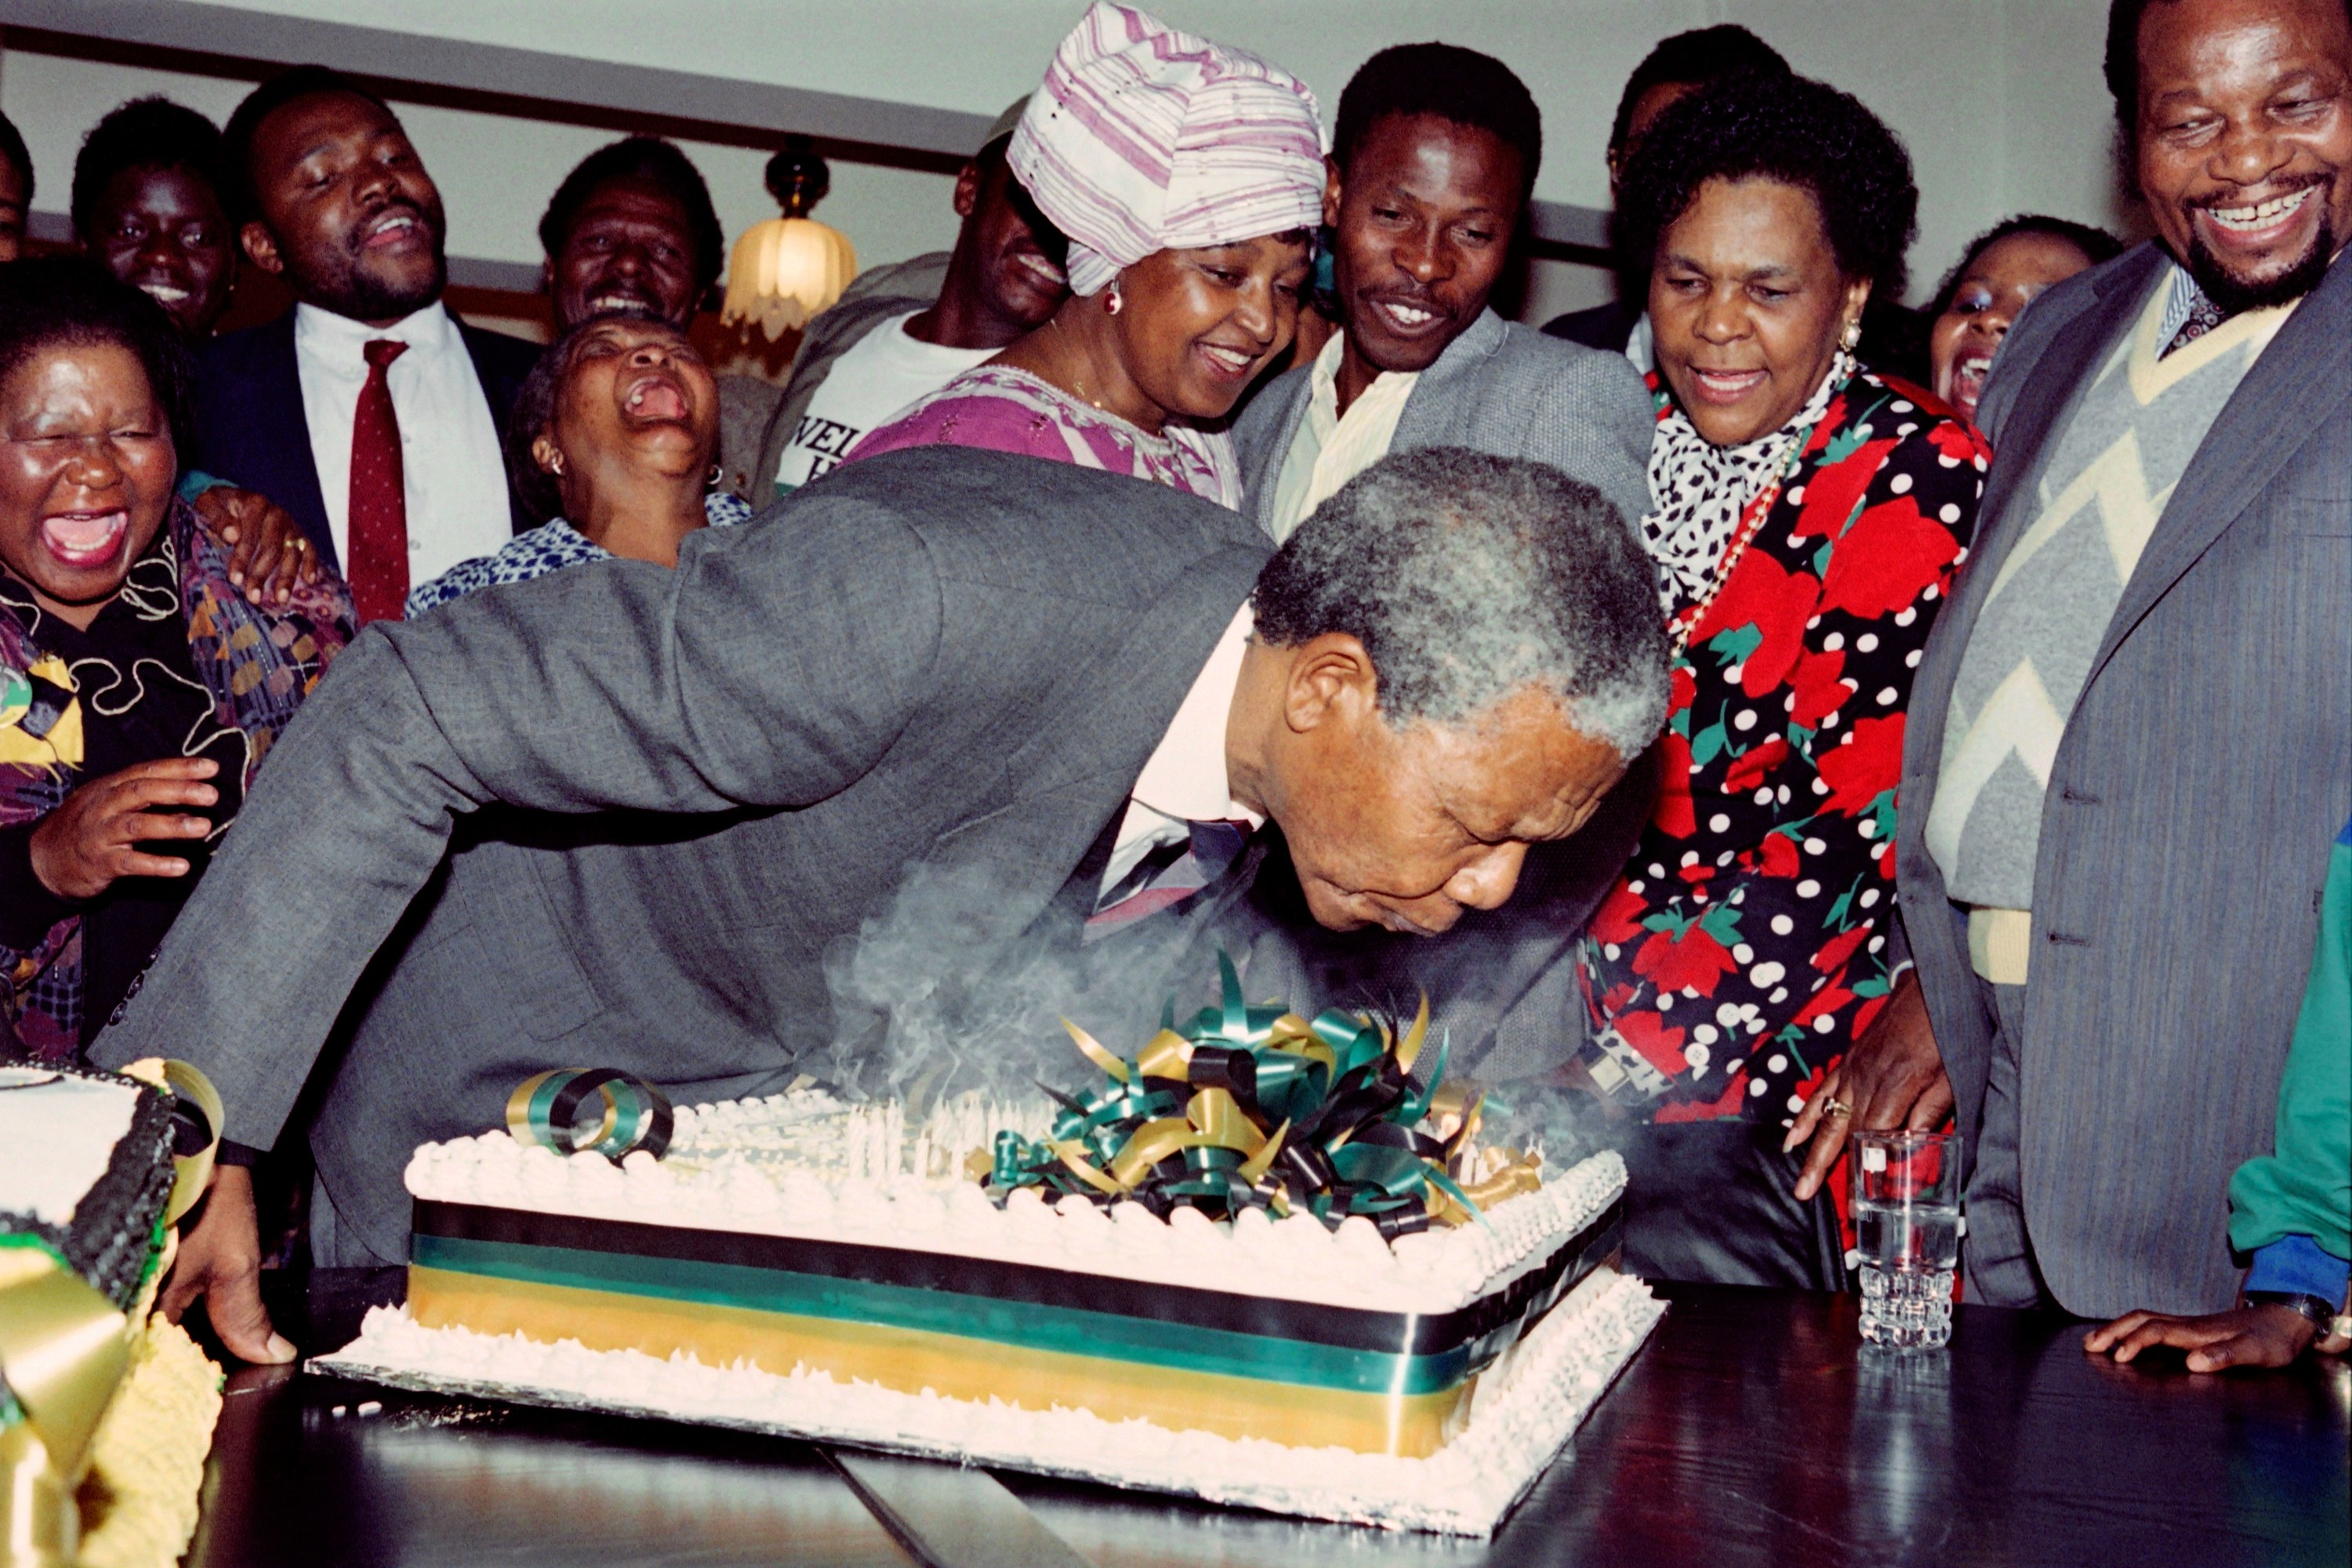 Nelson Mandela blows candles on his birthday cake surrounded by smiling people